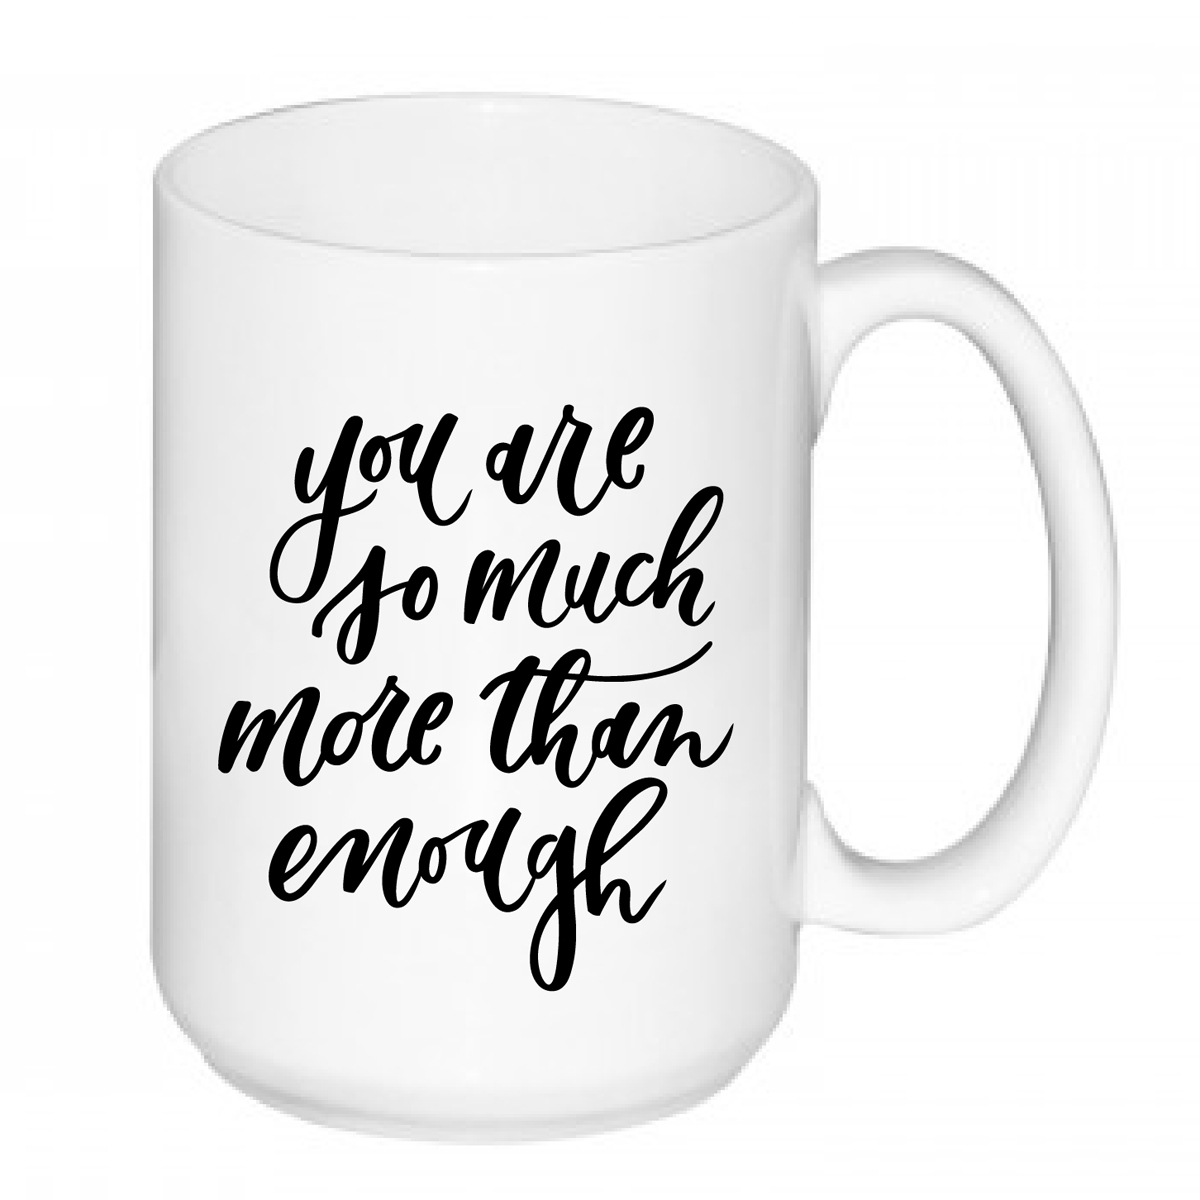 'You are so much more than enough' mug